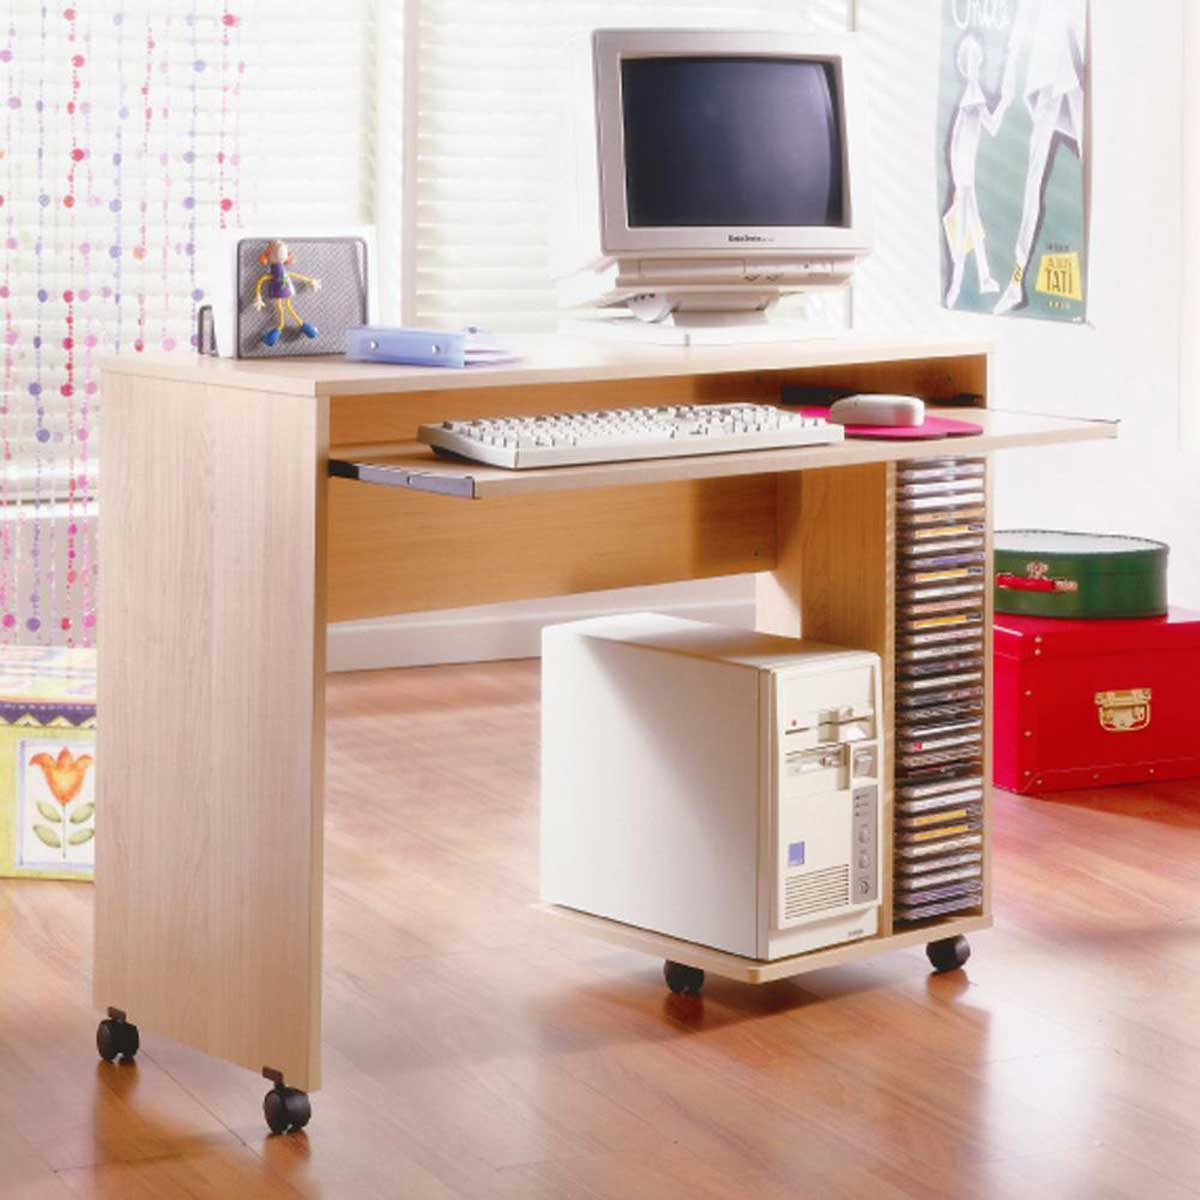 Mobile computer desk for home office solution - Mobile office desk ...